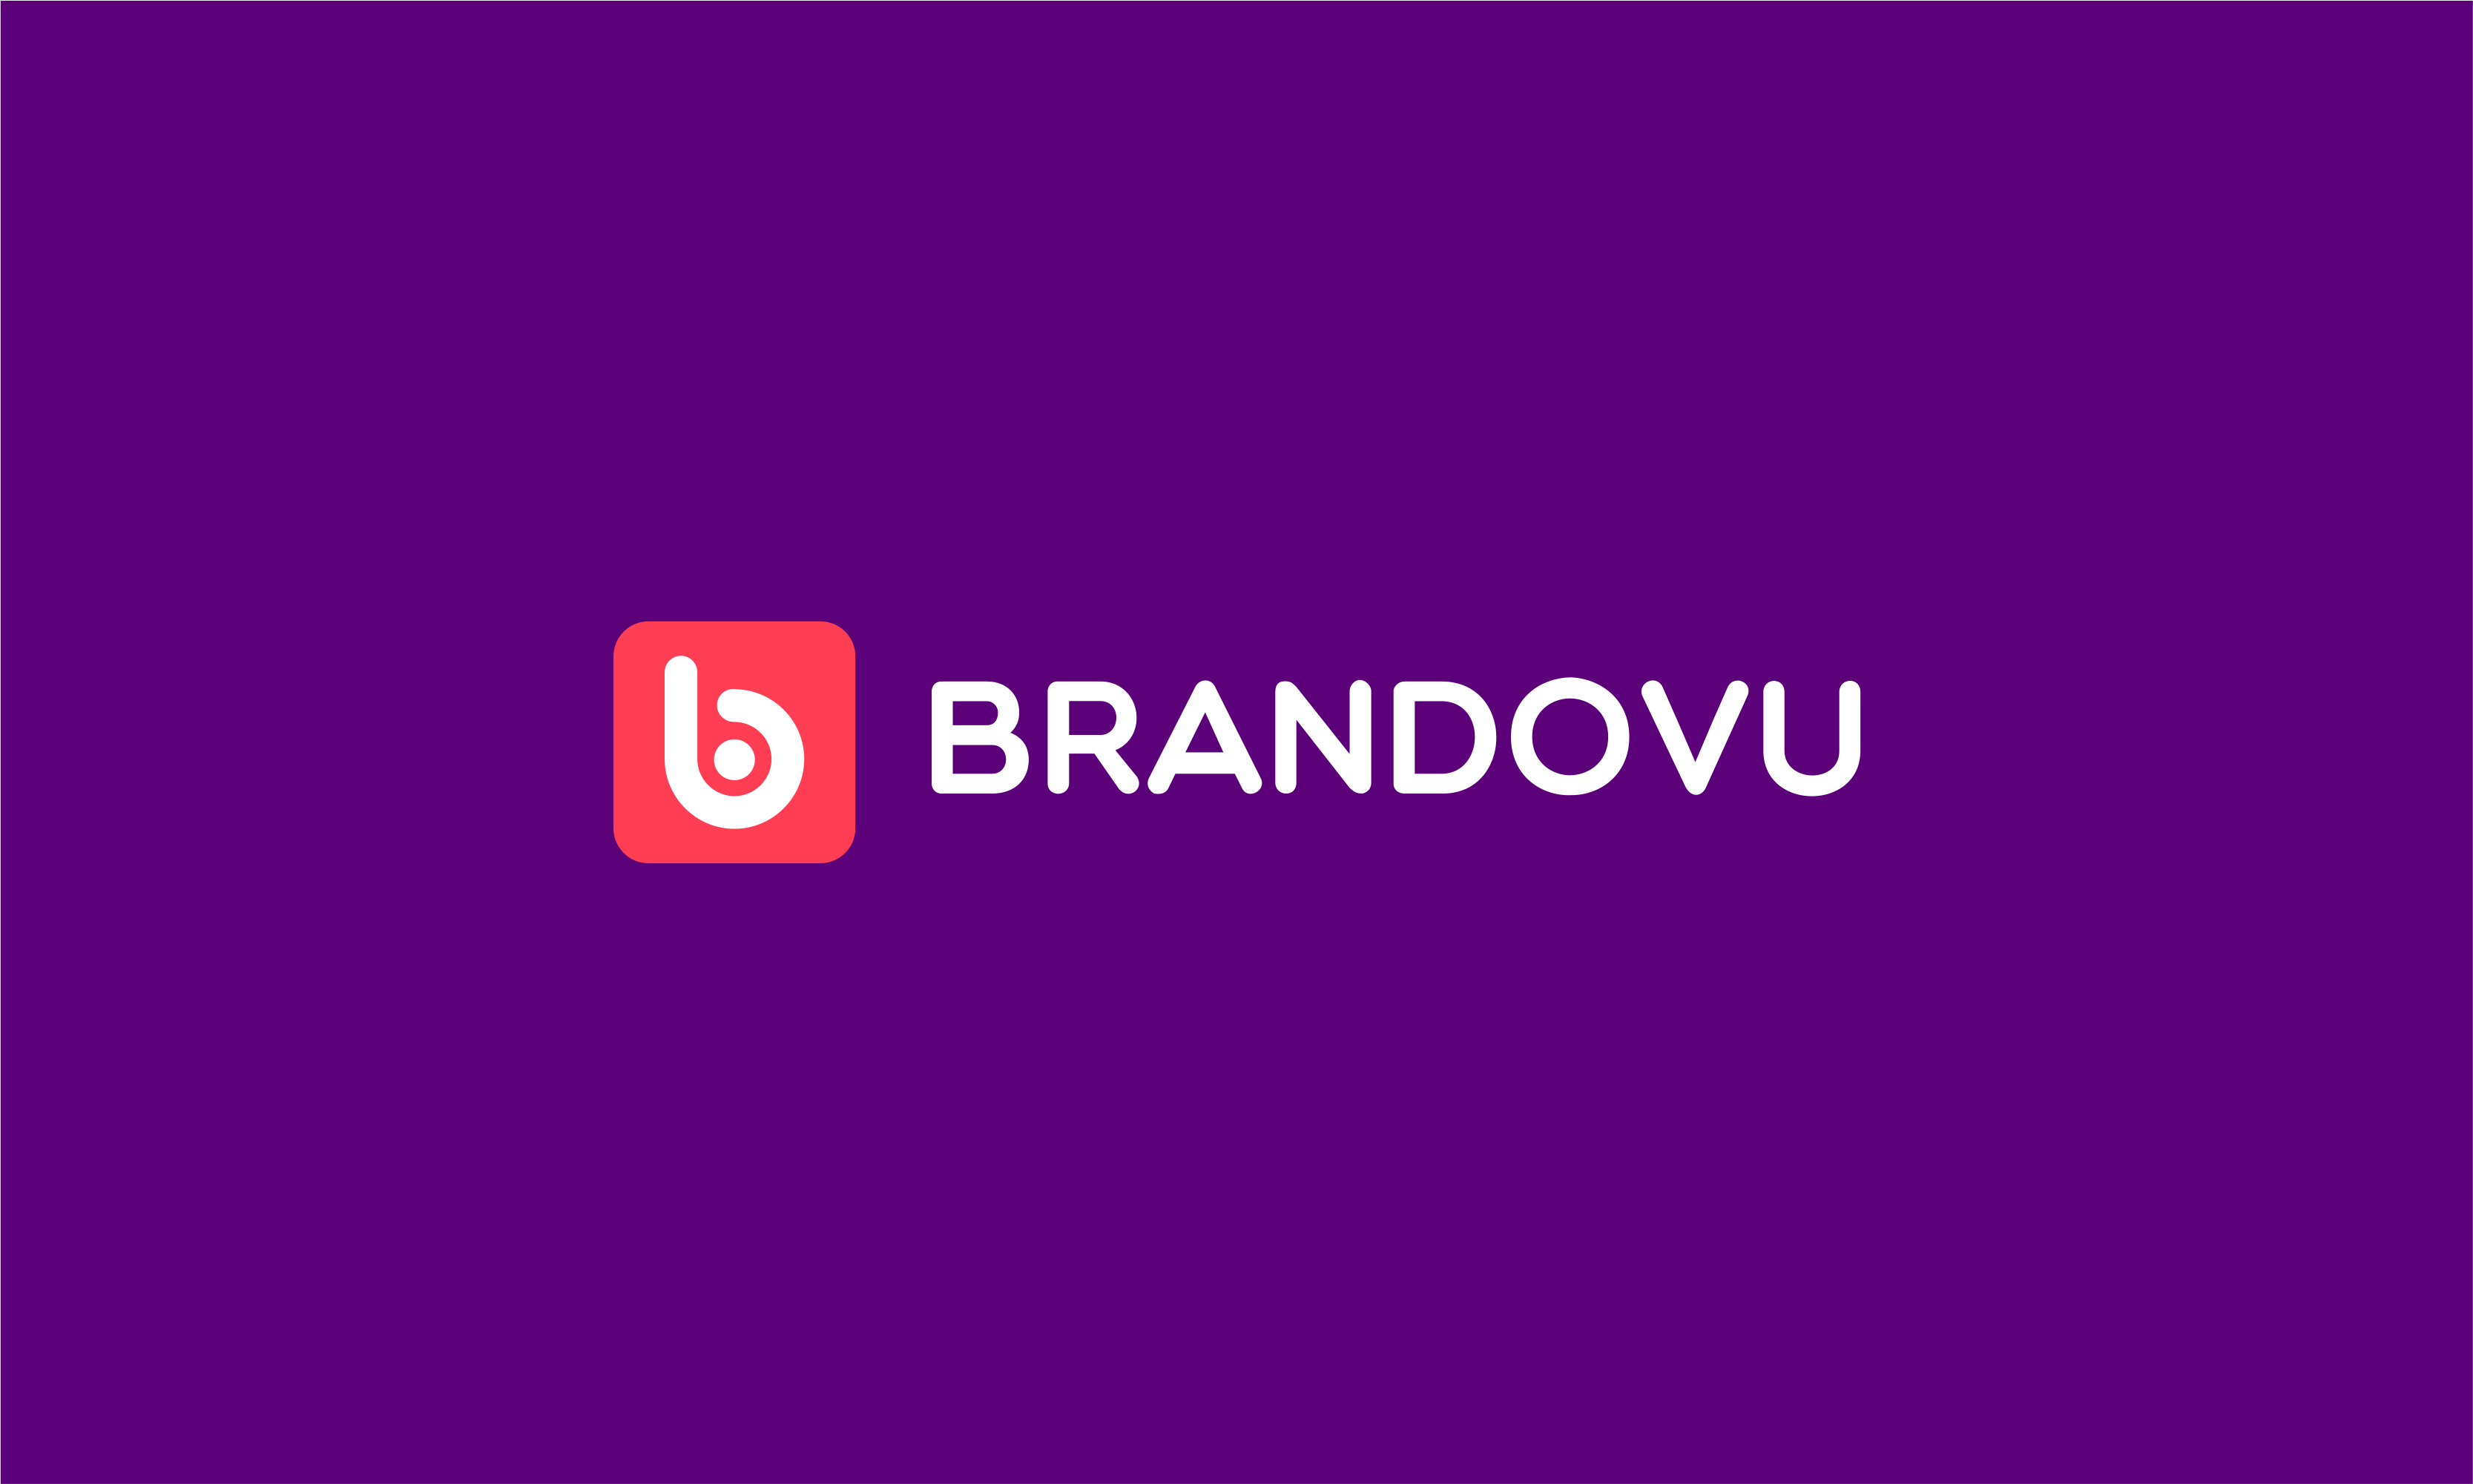 Brandovu - Marketing company name for sale